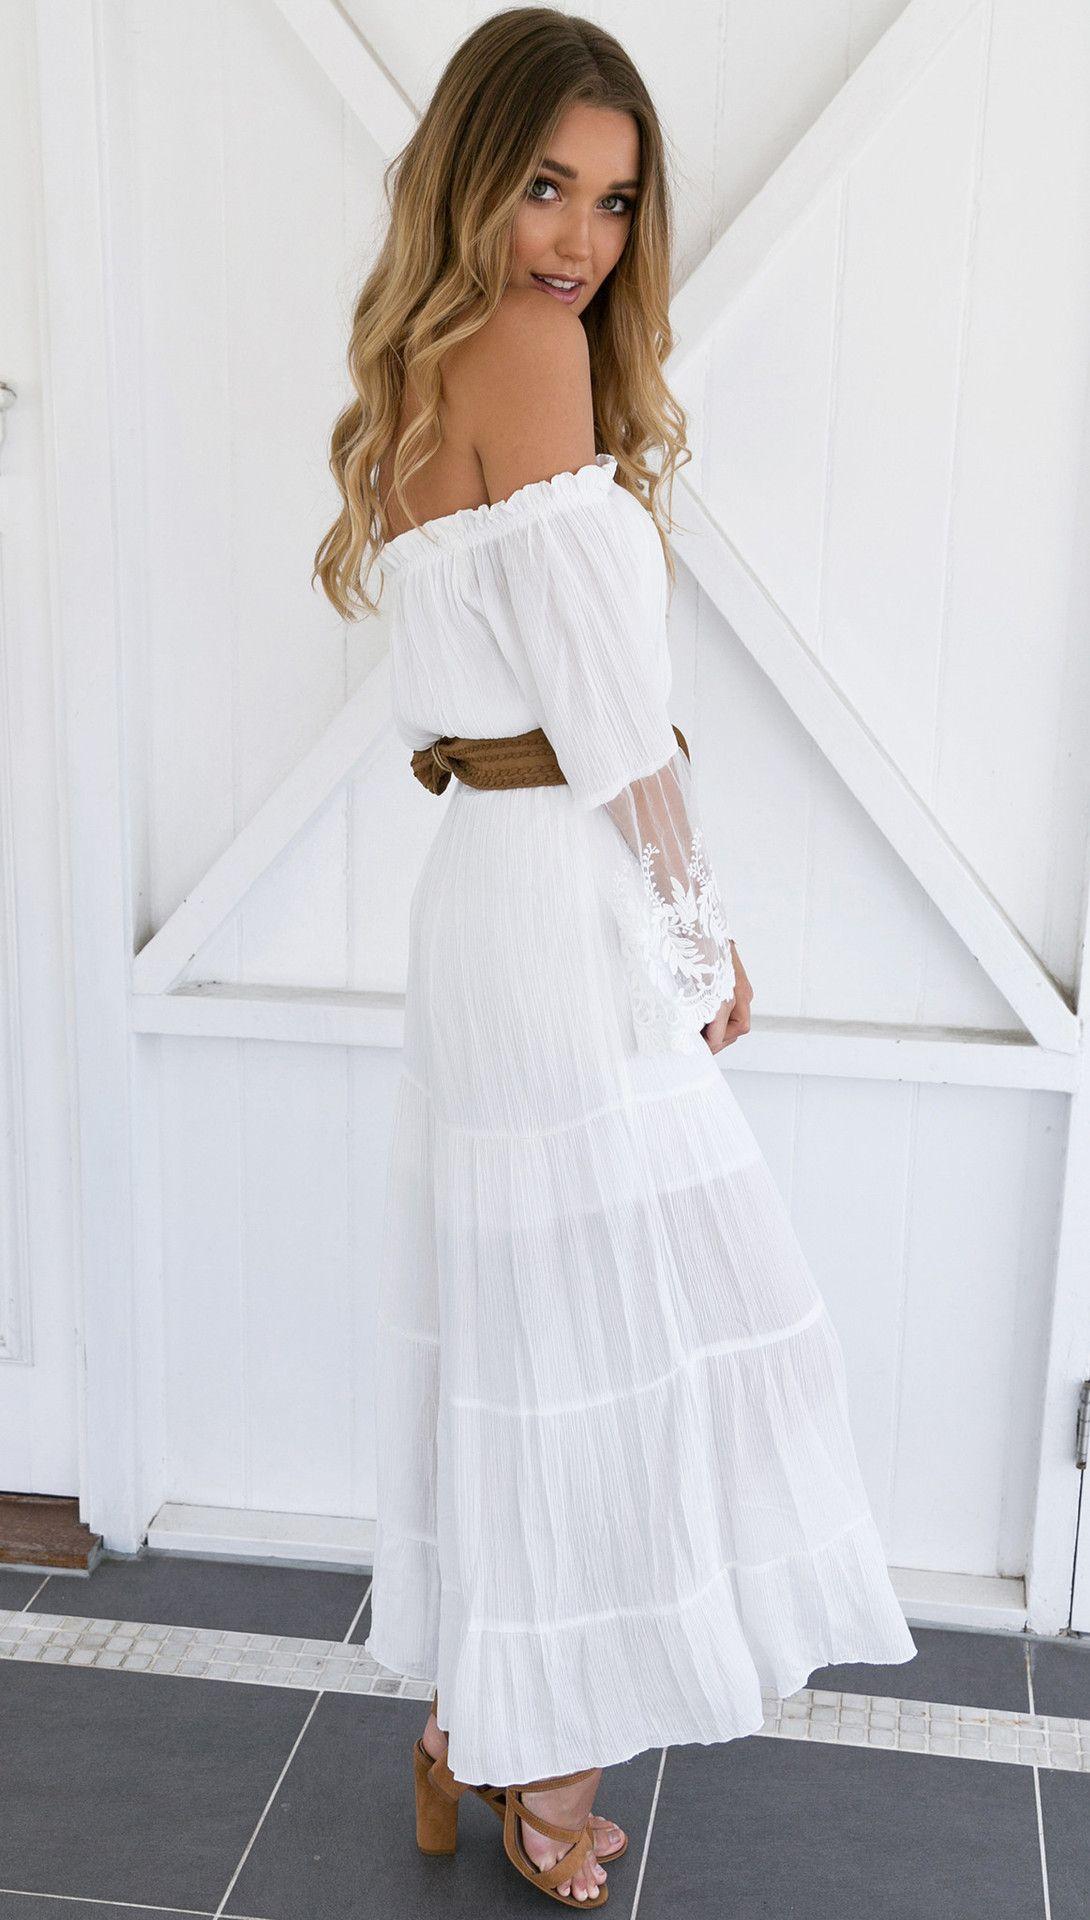 White Lace Maxi Dress with belt